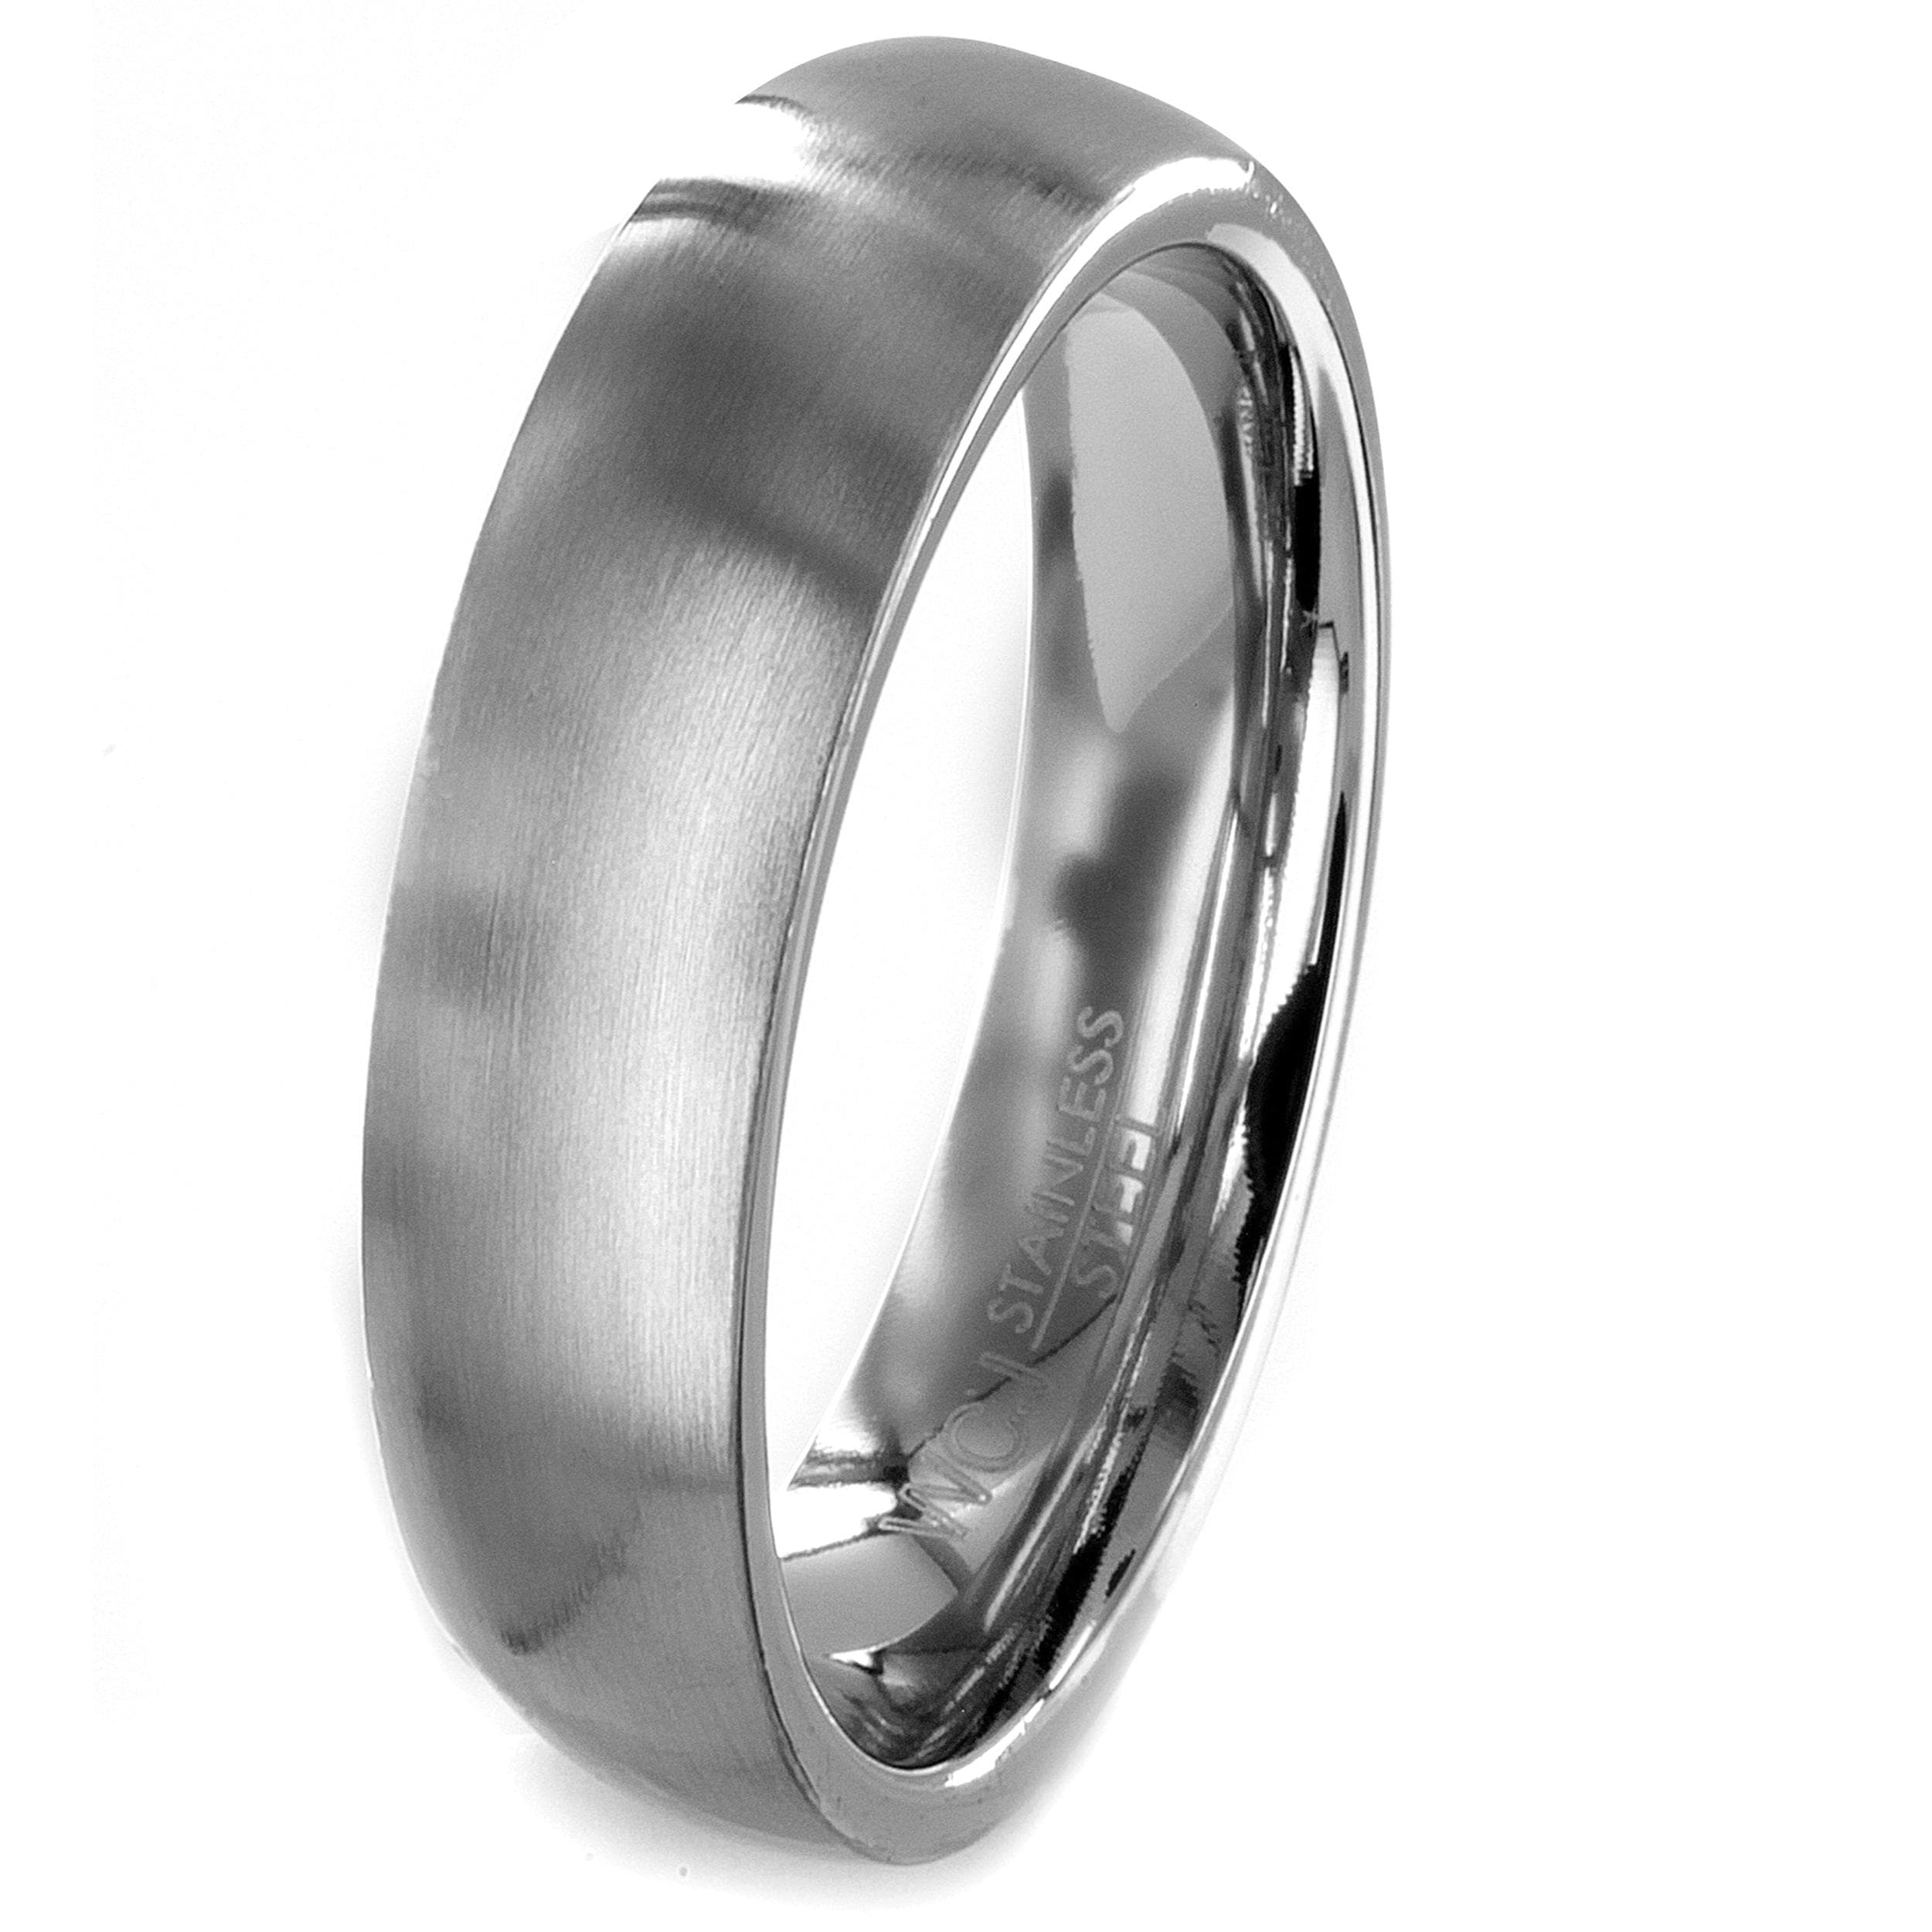 Stainless Steel Brushed Finish Wedding Band - Thumbnail 0